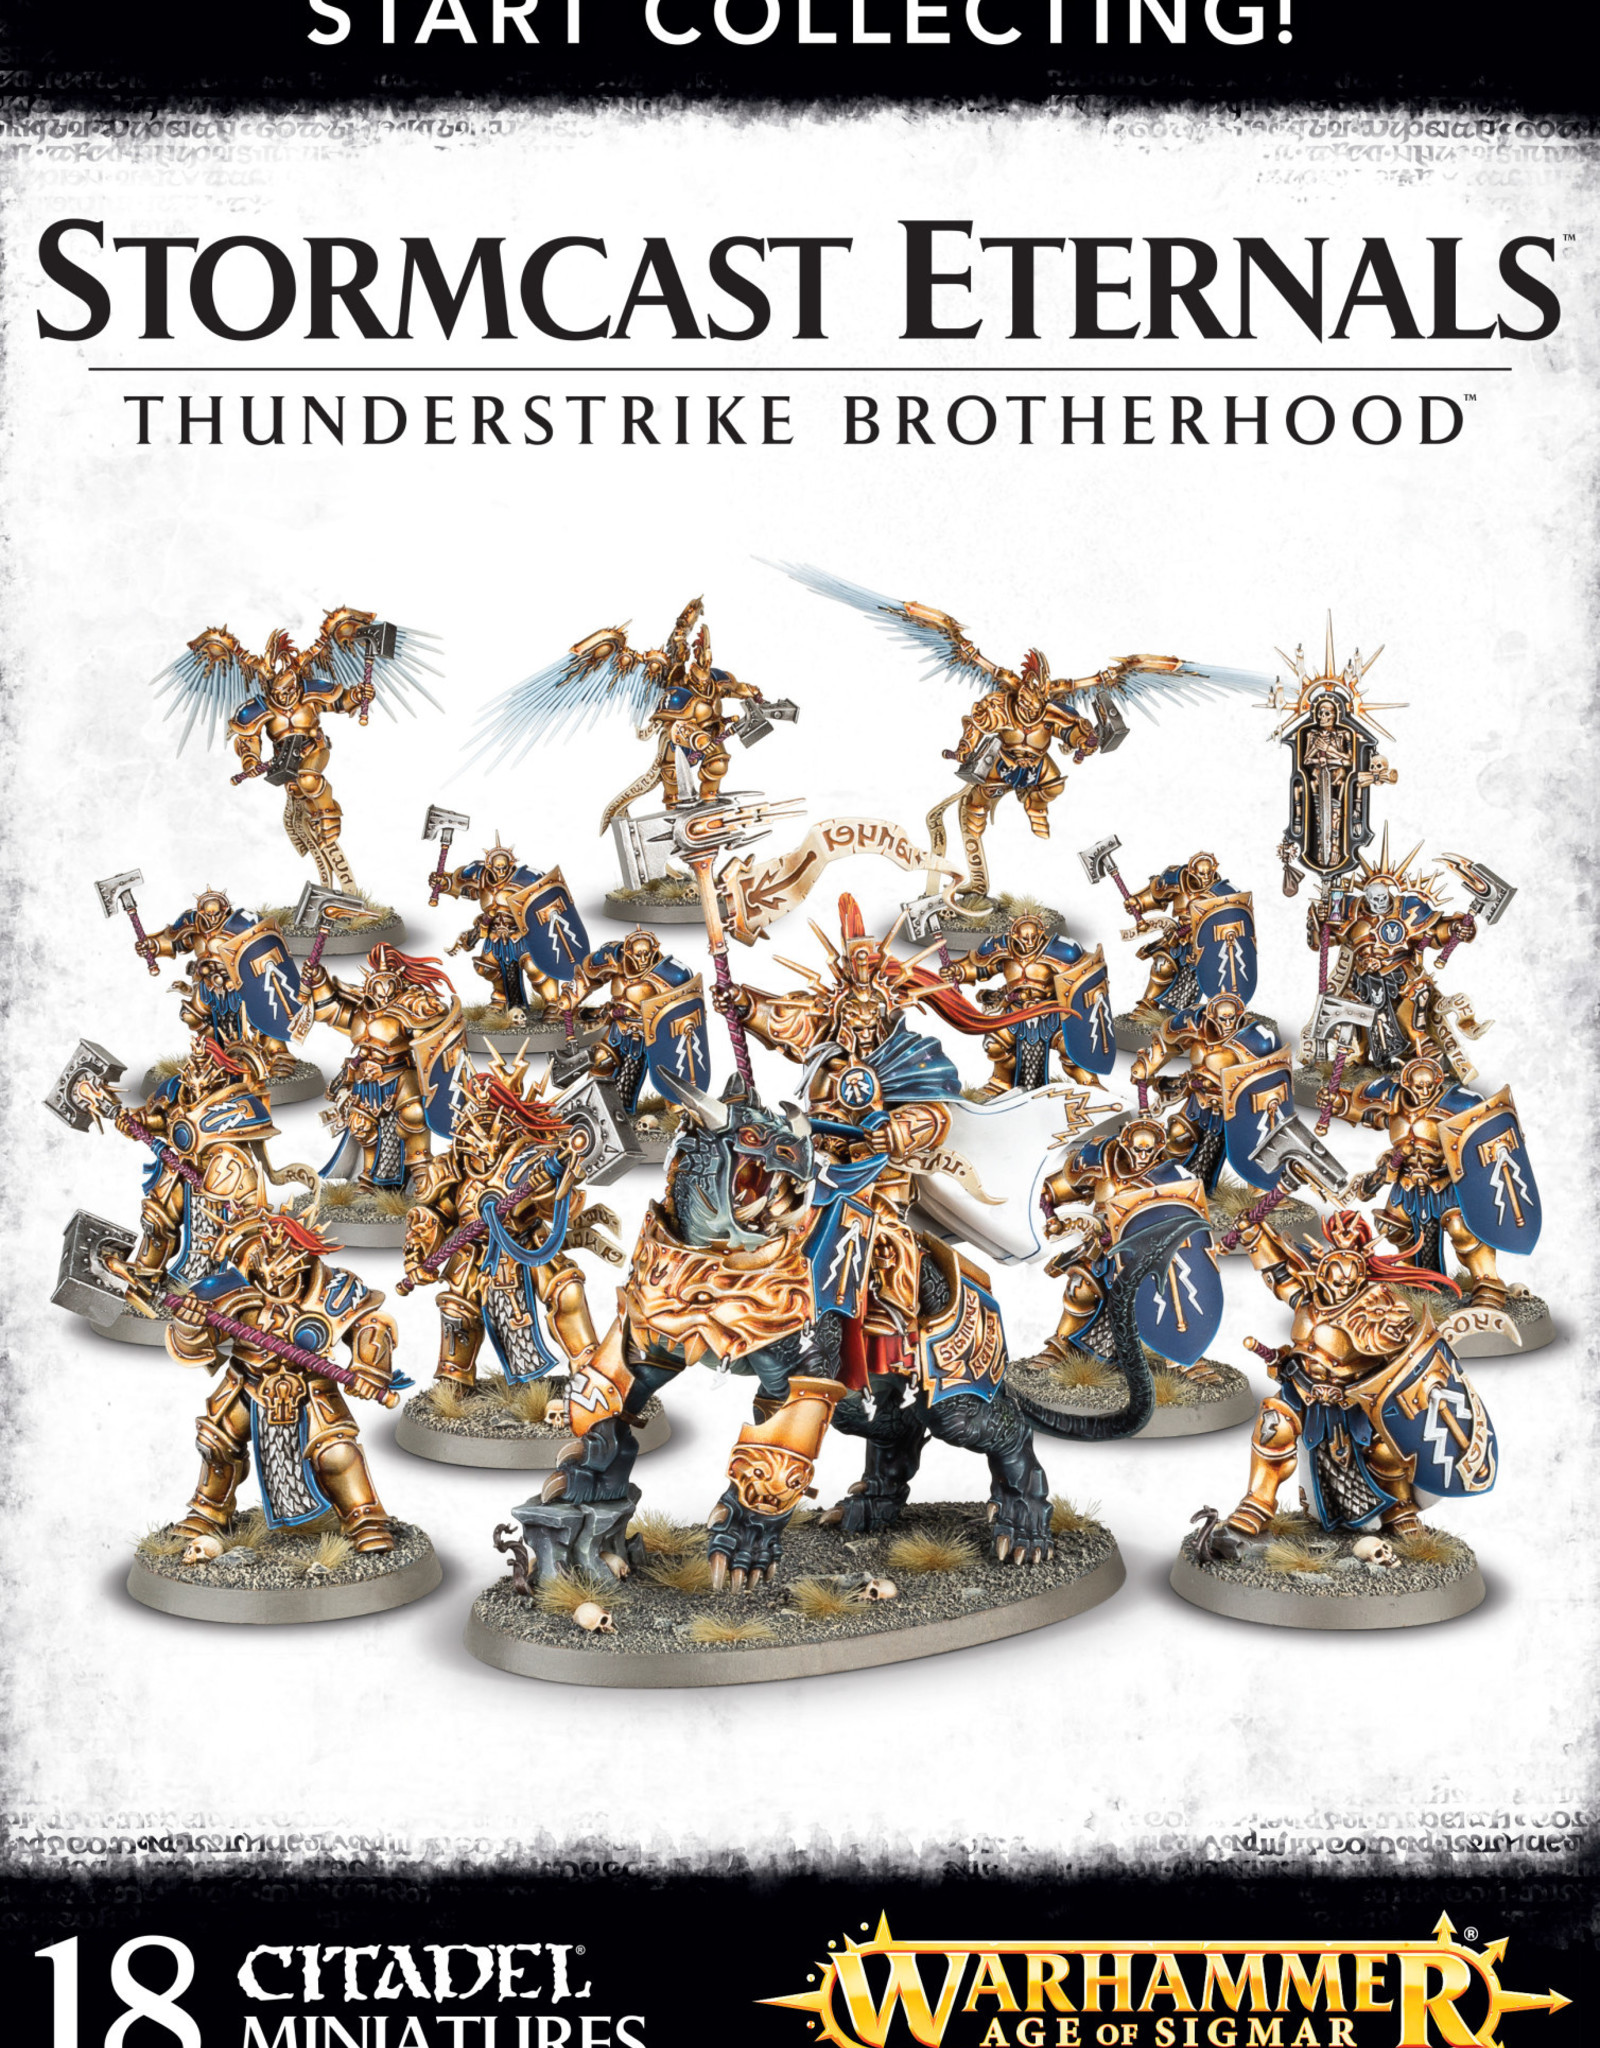 Age of Sigmar Start Collecting! Thunderstrike Brotherhood